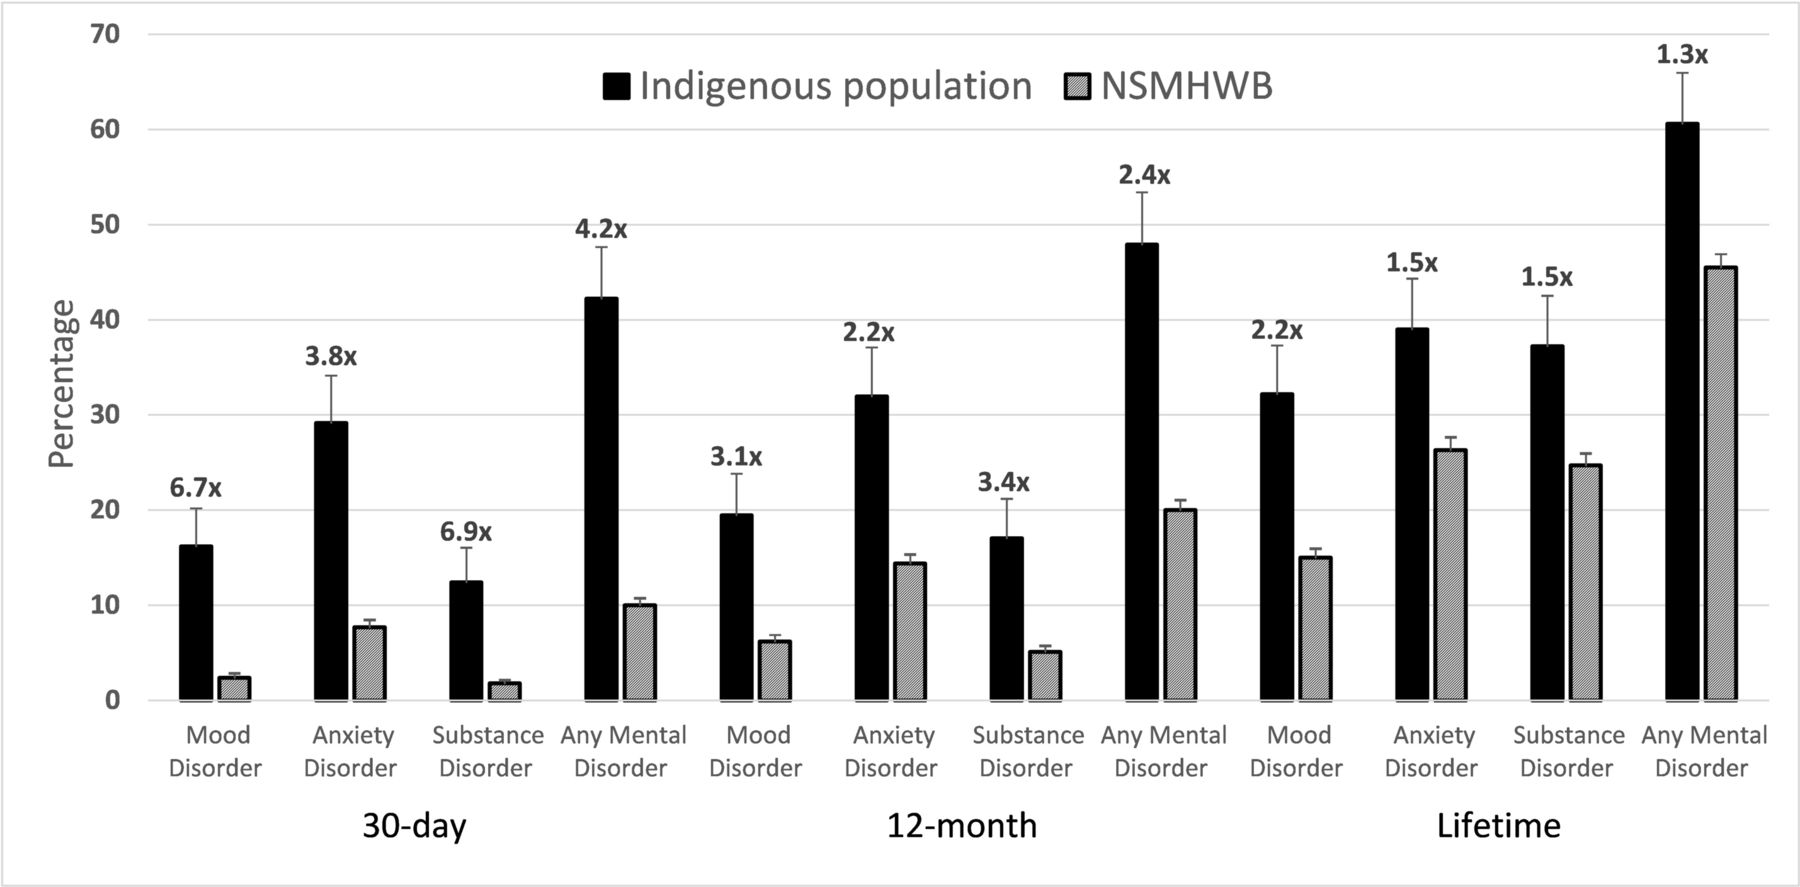 Common Mental Disorders Among Indigenous People Living In